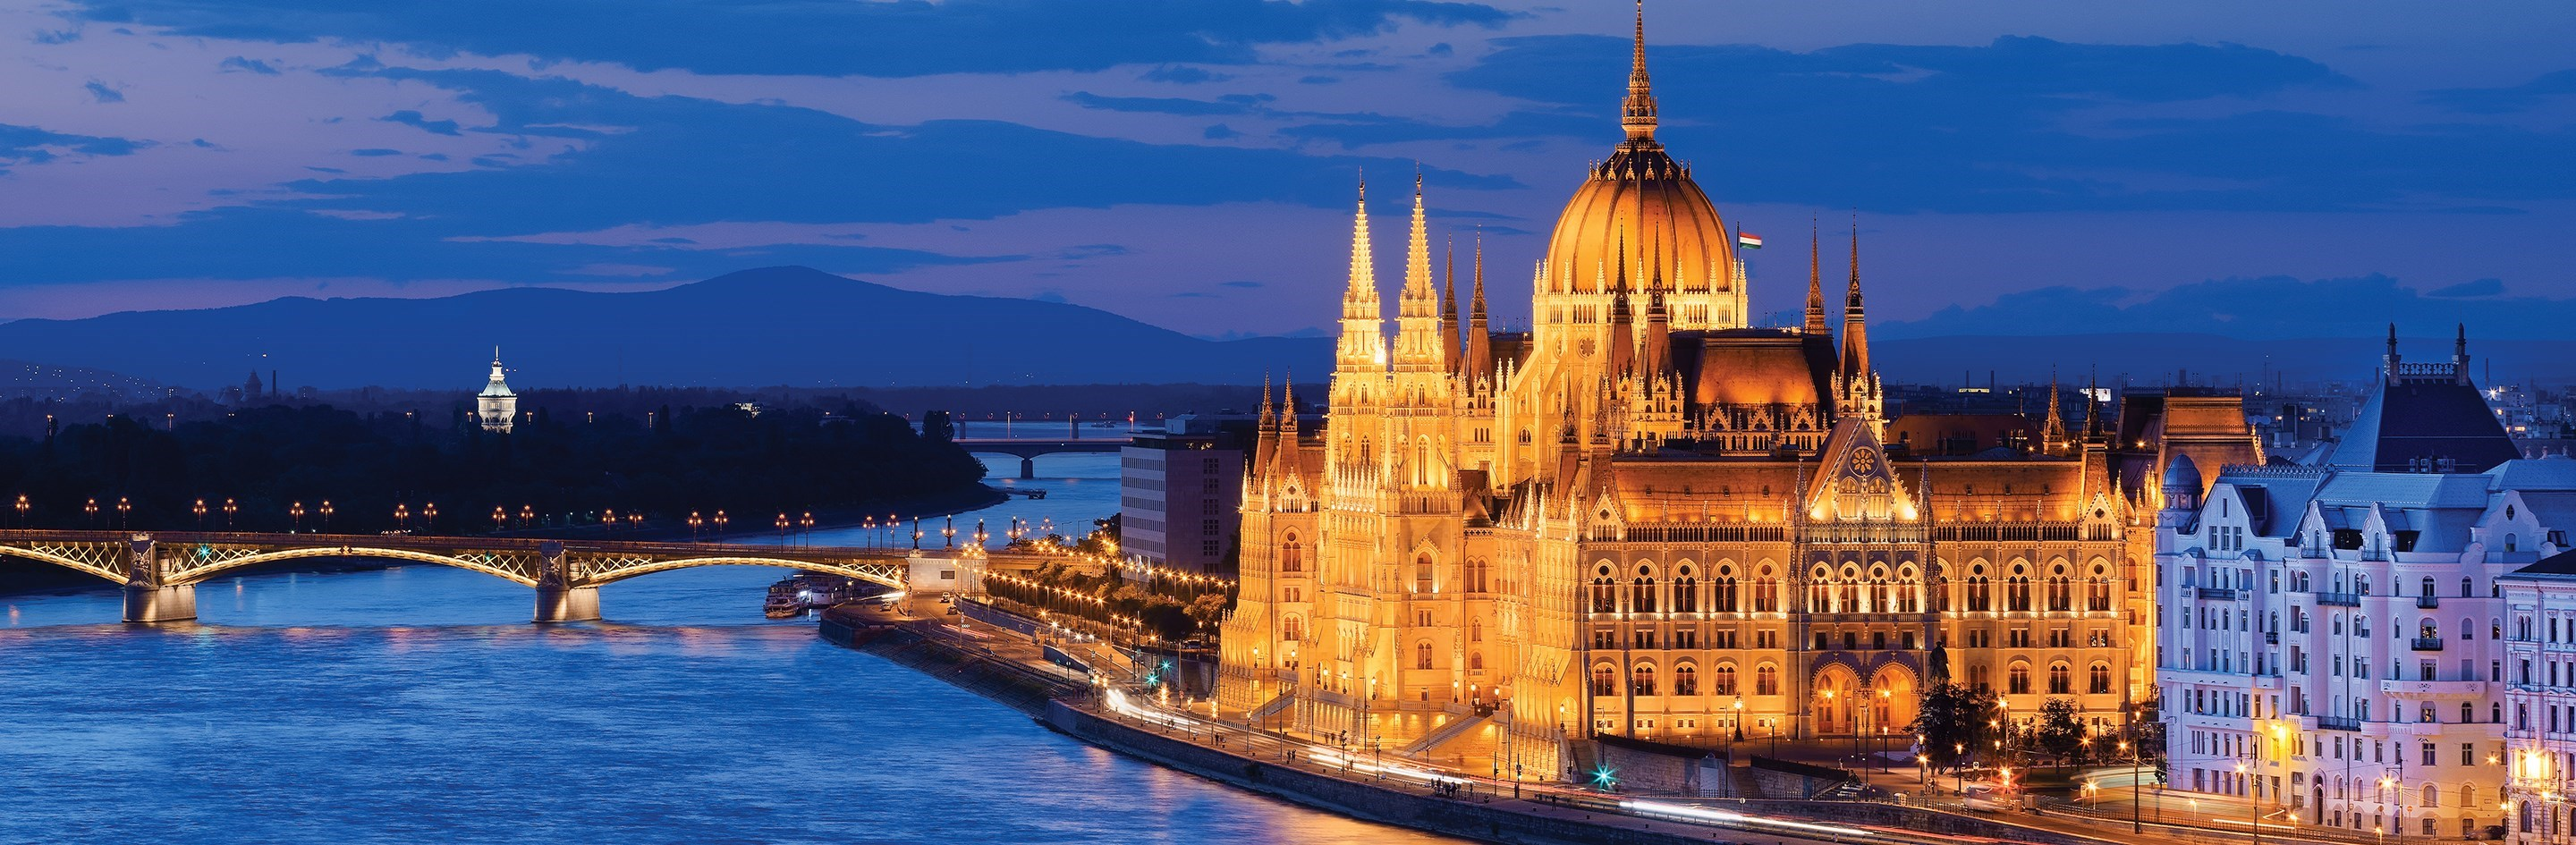 https://www.amawaterways.com/Assets/Cruises/Large/theromanticdanube_Budapest_DSC4394_hero.jpg